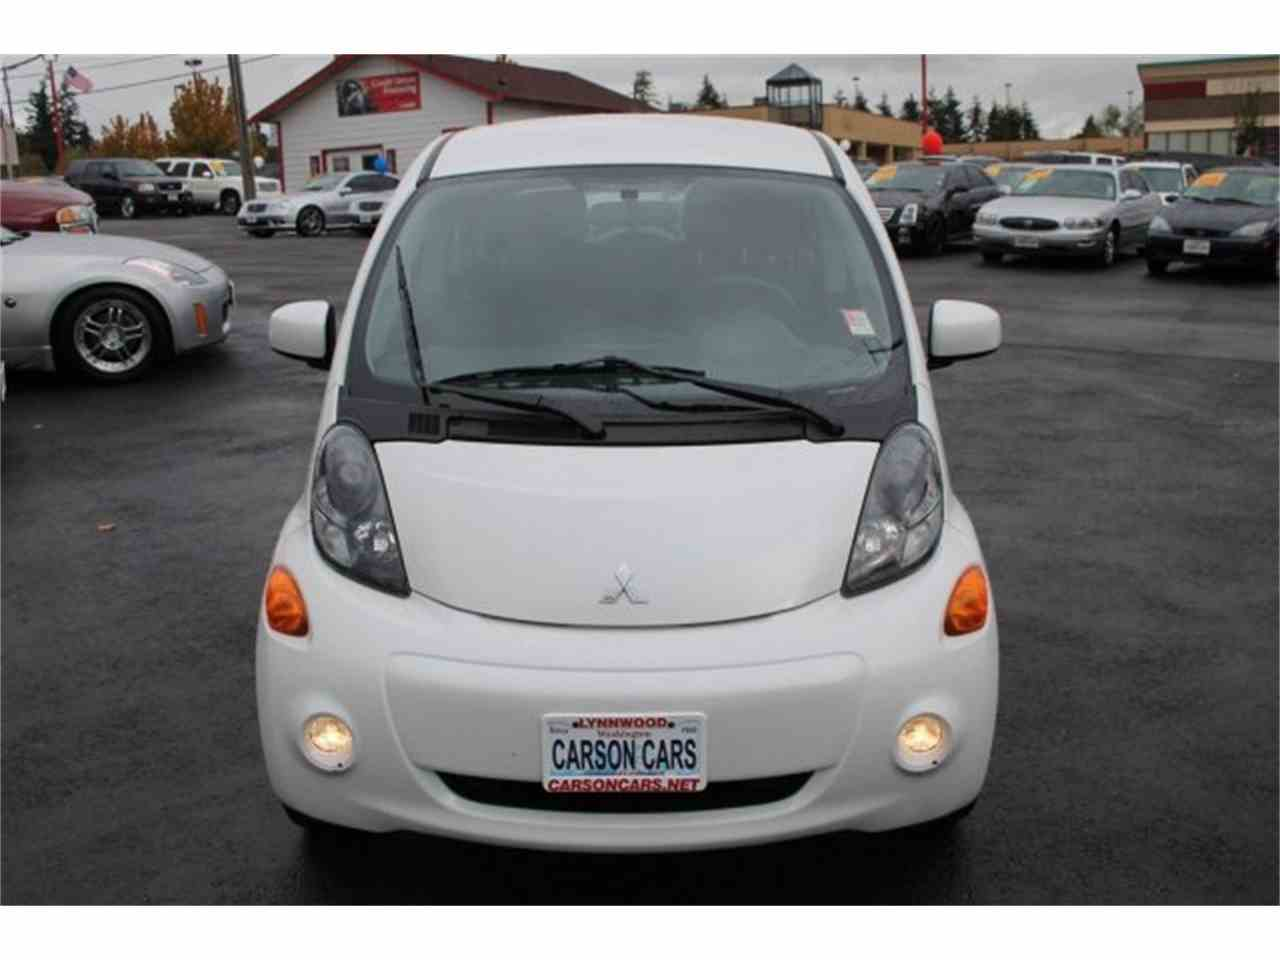 Large Picture of '14 Mitsubishi i-MiEV located in Lynnwood Washington - $9,995.00 - JJJG